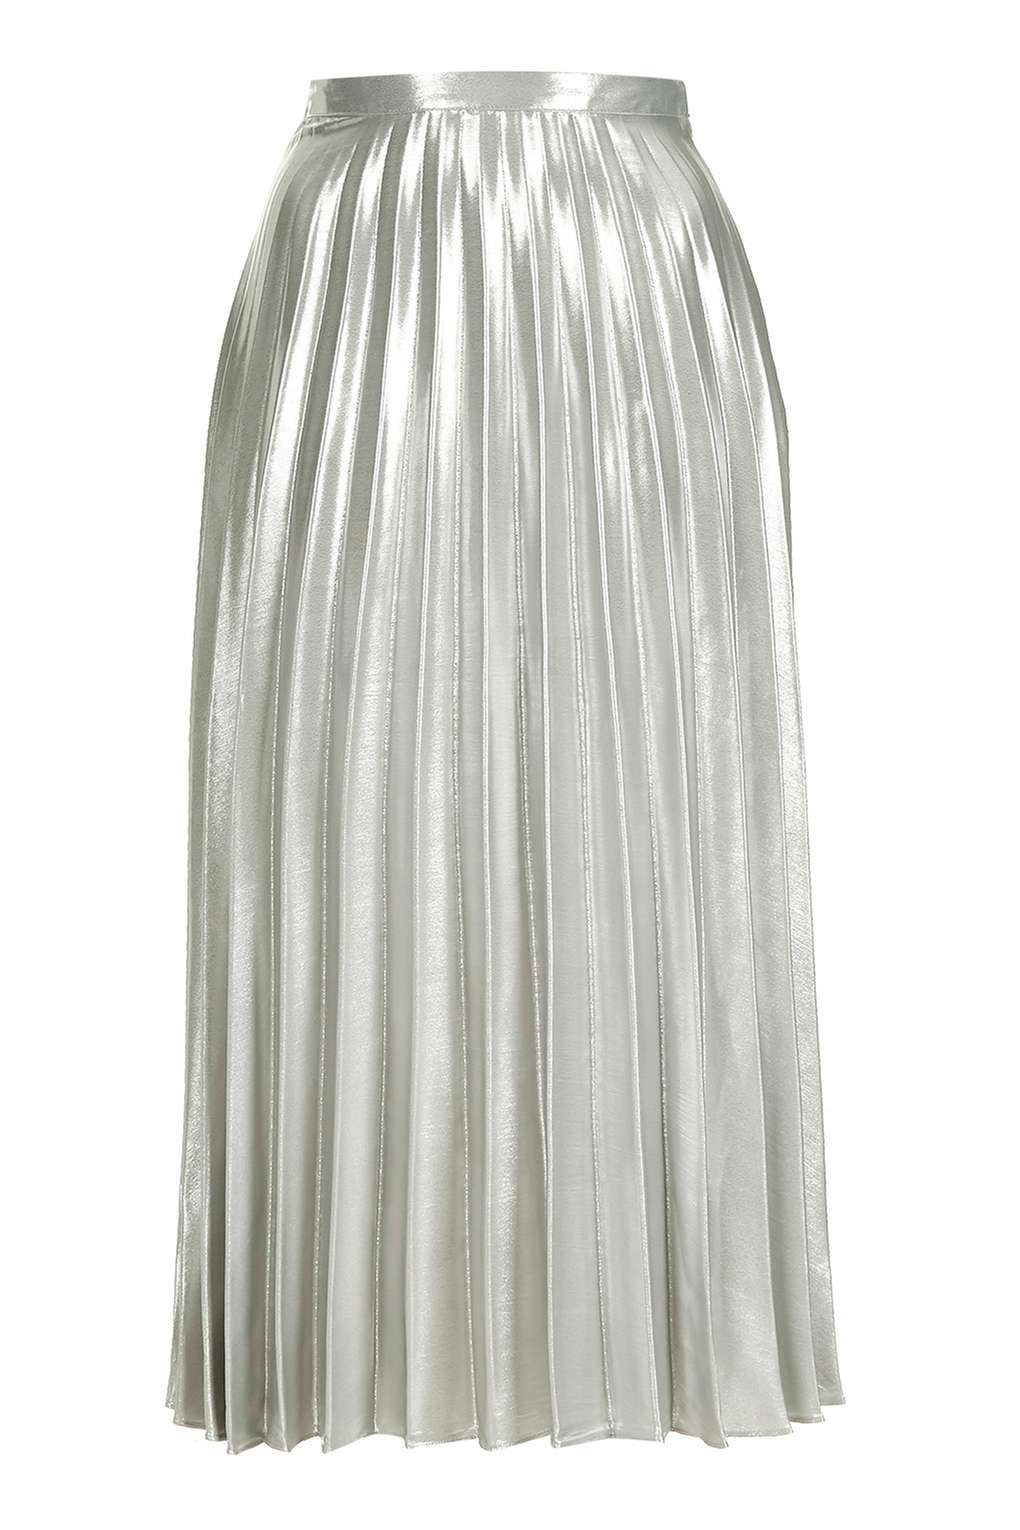 TALL Metallic Pleat Skirt £68.00 Click to visit Topshop